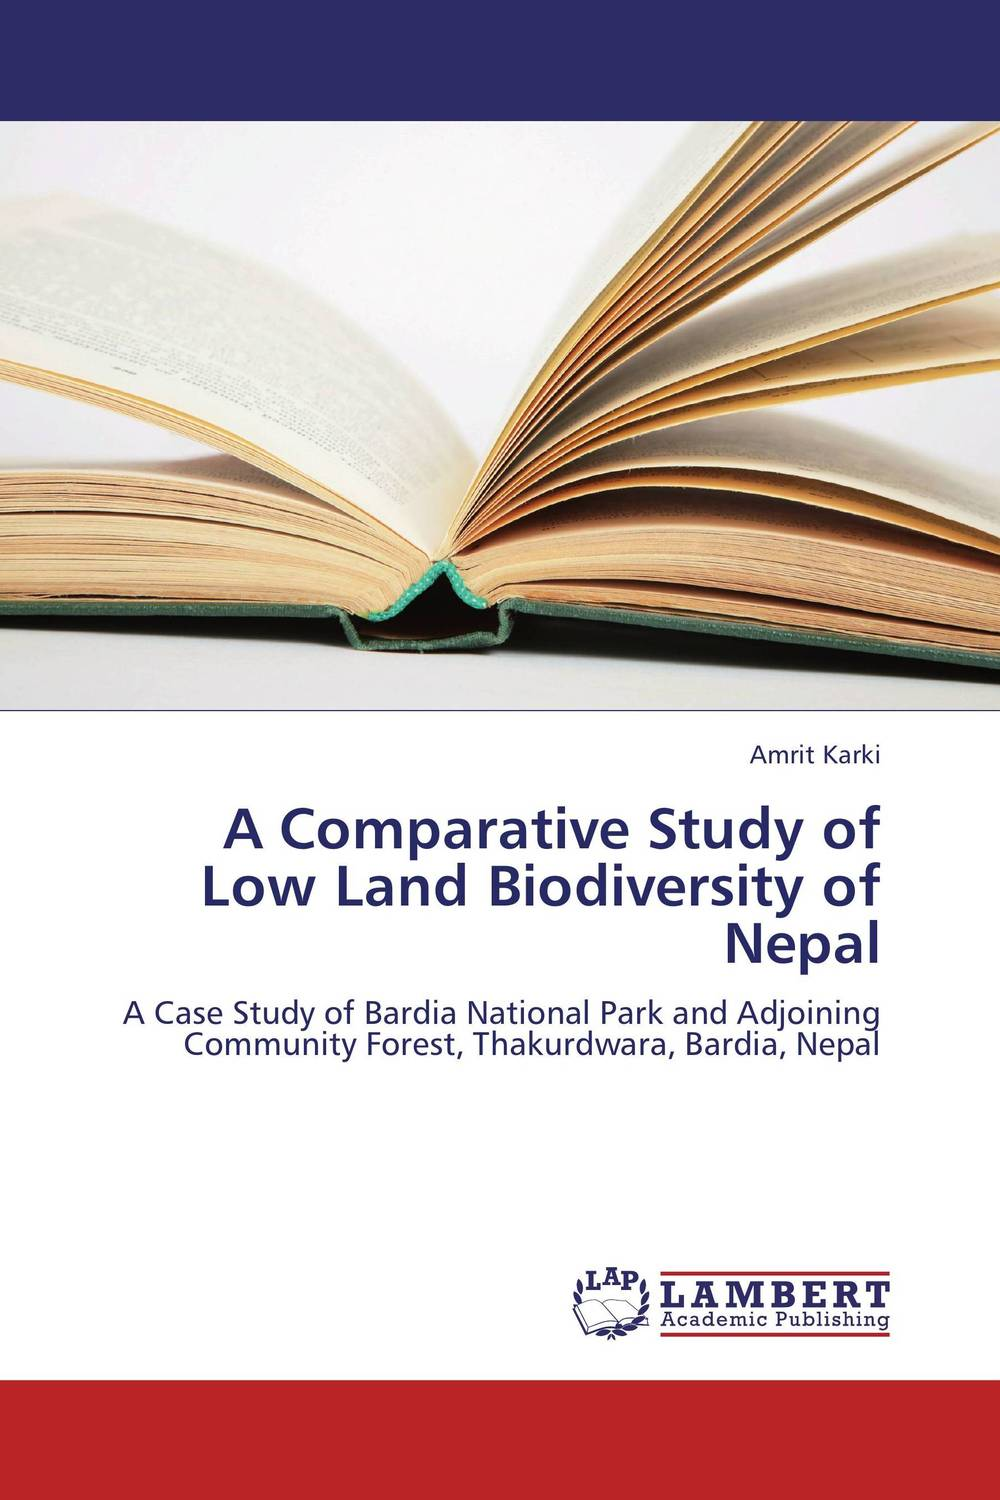 A Comparative Study of Low Land Biodiversity of Nepal